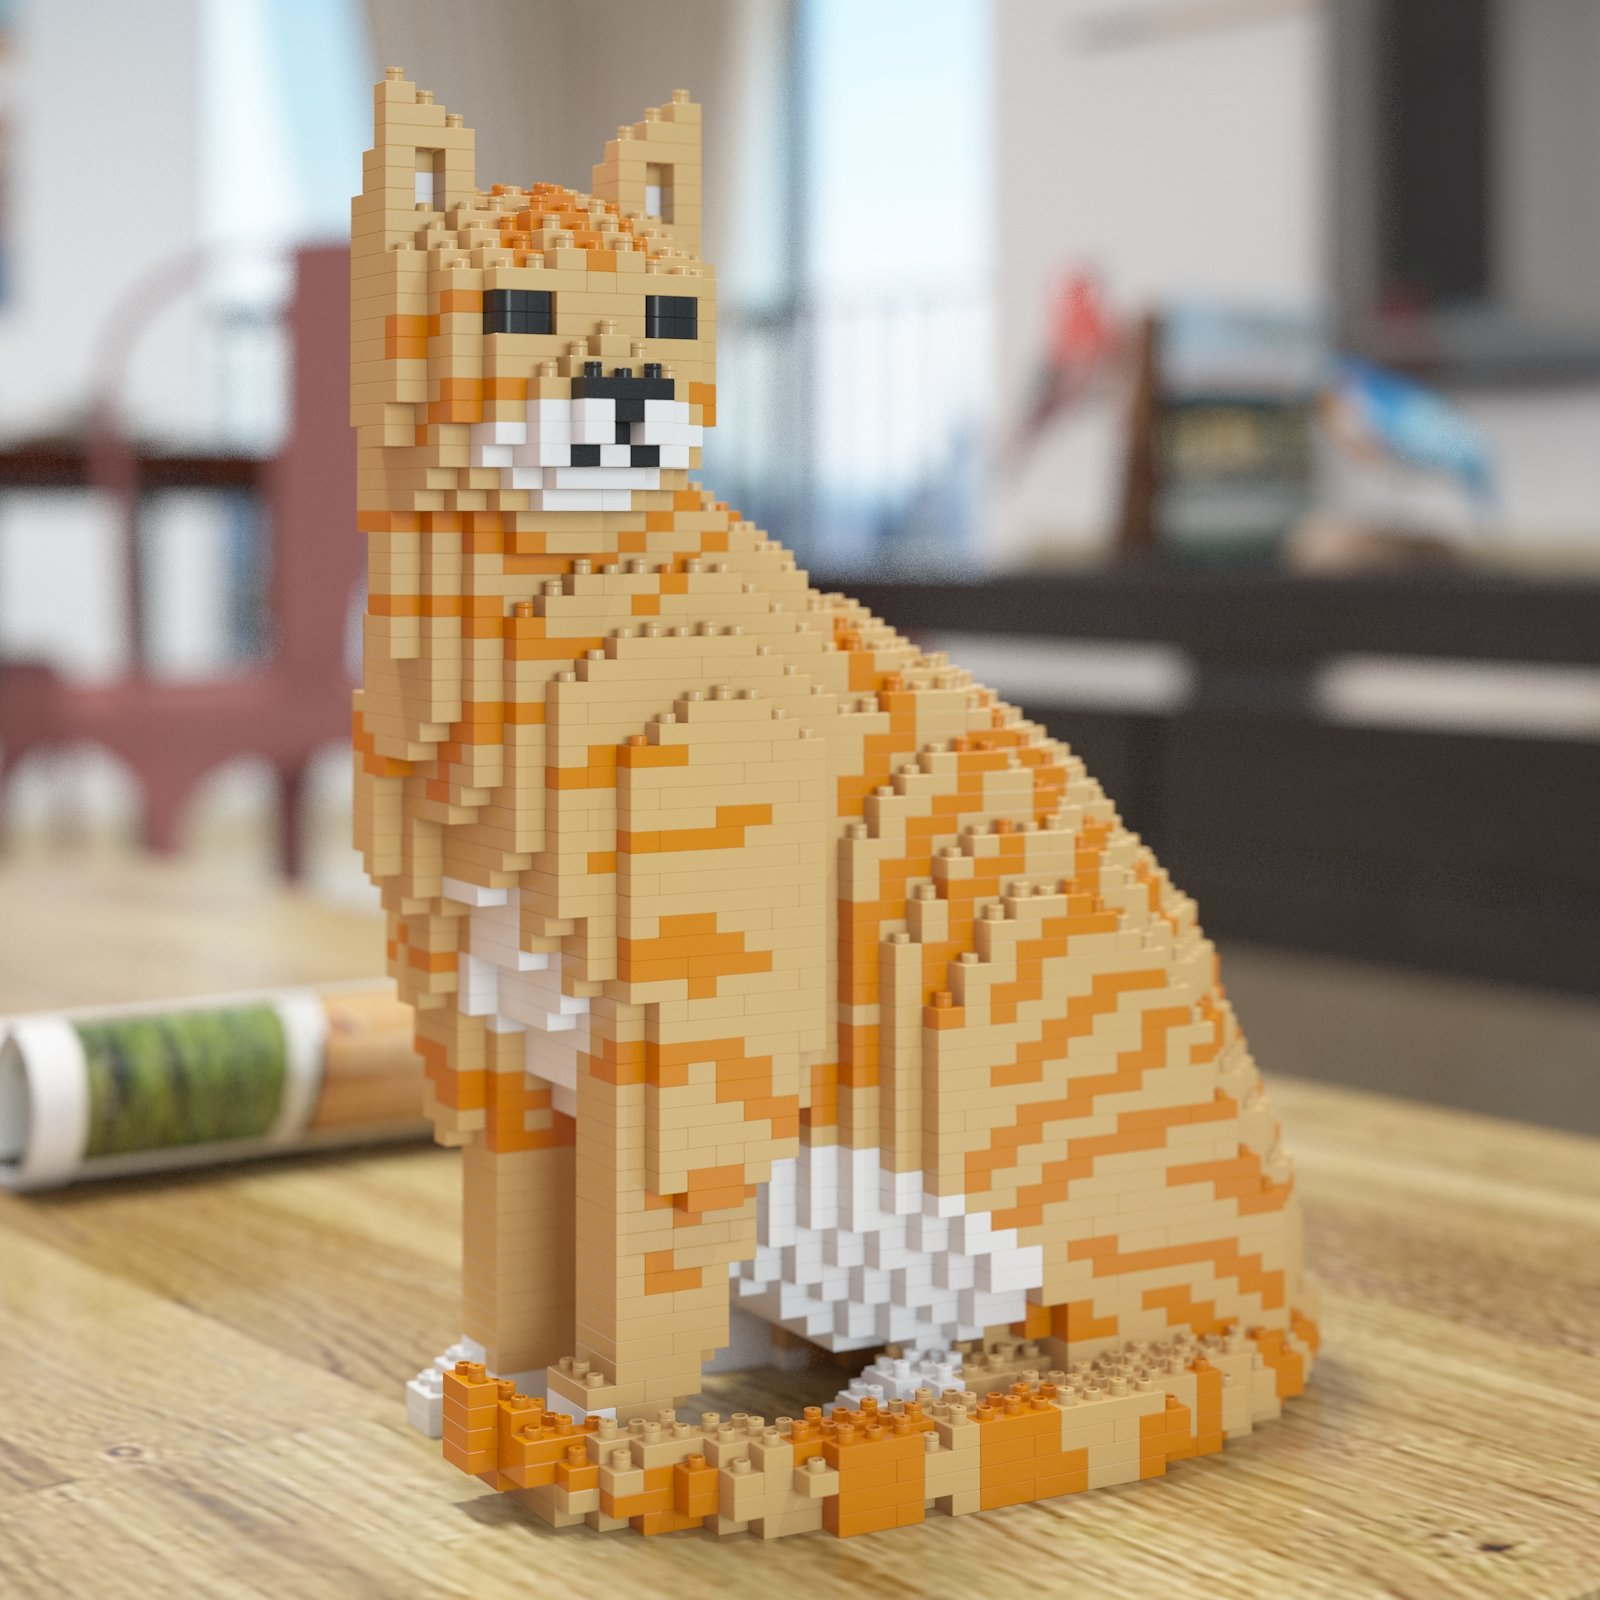 Lego-inspired Cat Sculpture